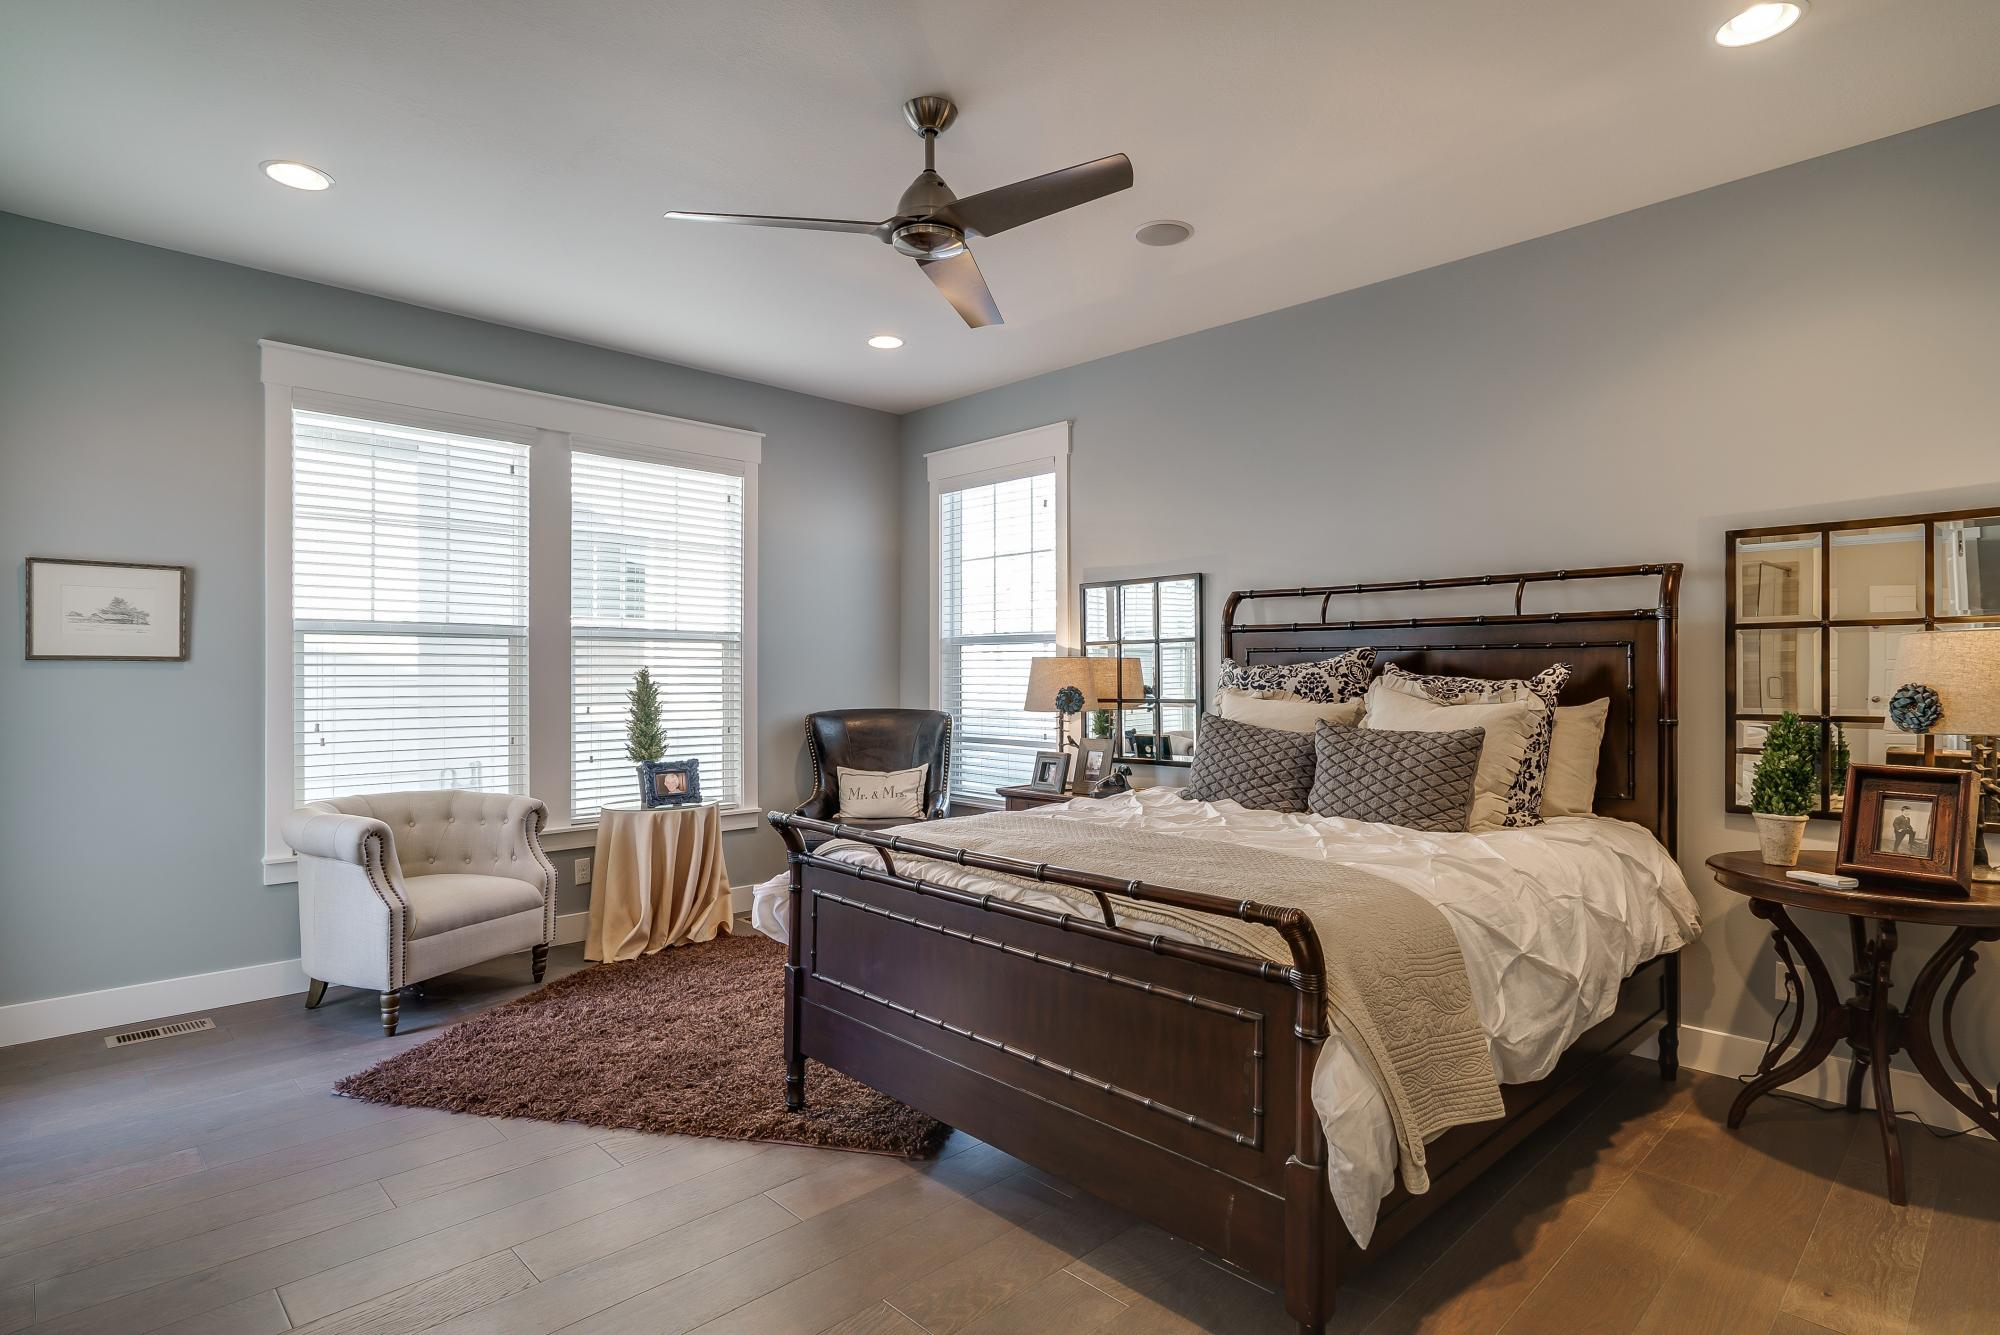 Bedroom-in-Linden-at-Hill Farms-in-Kaysville